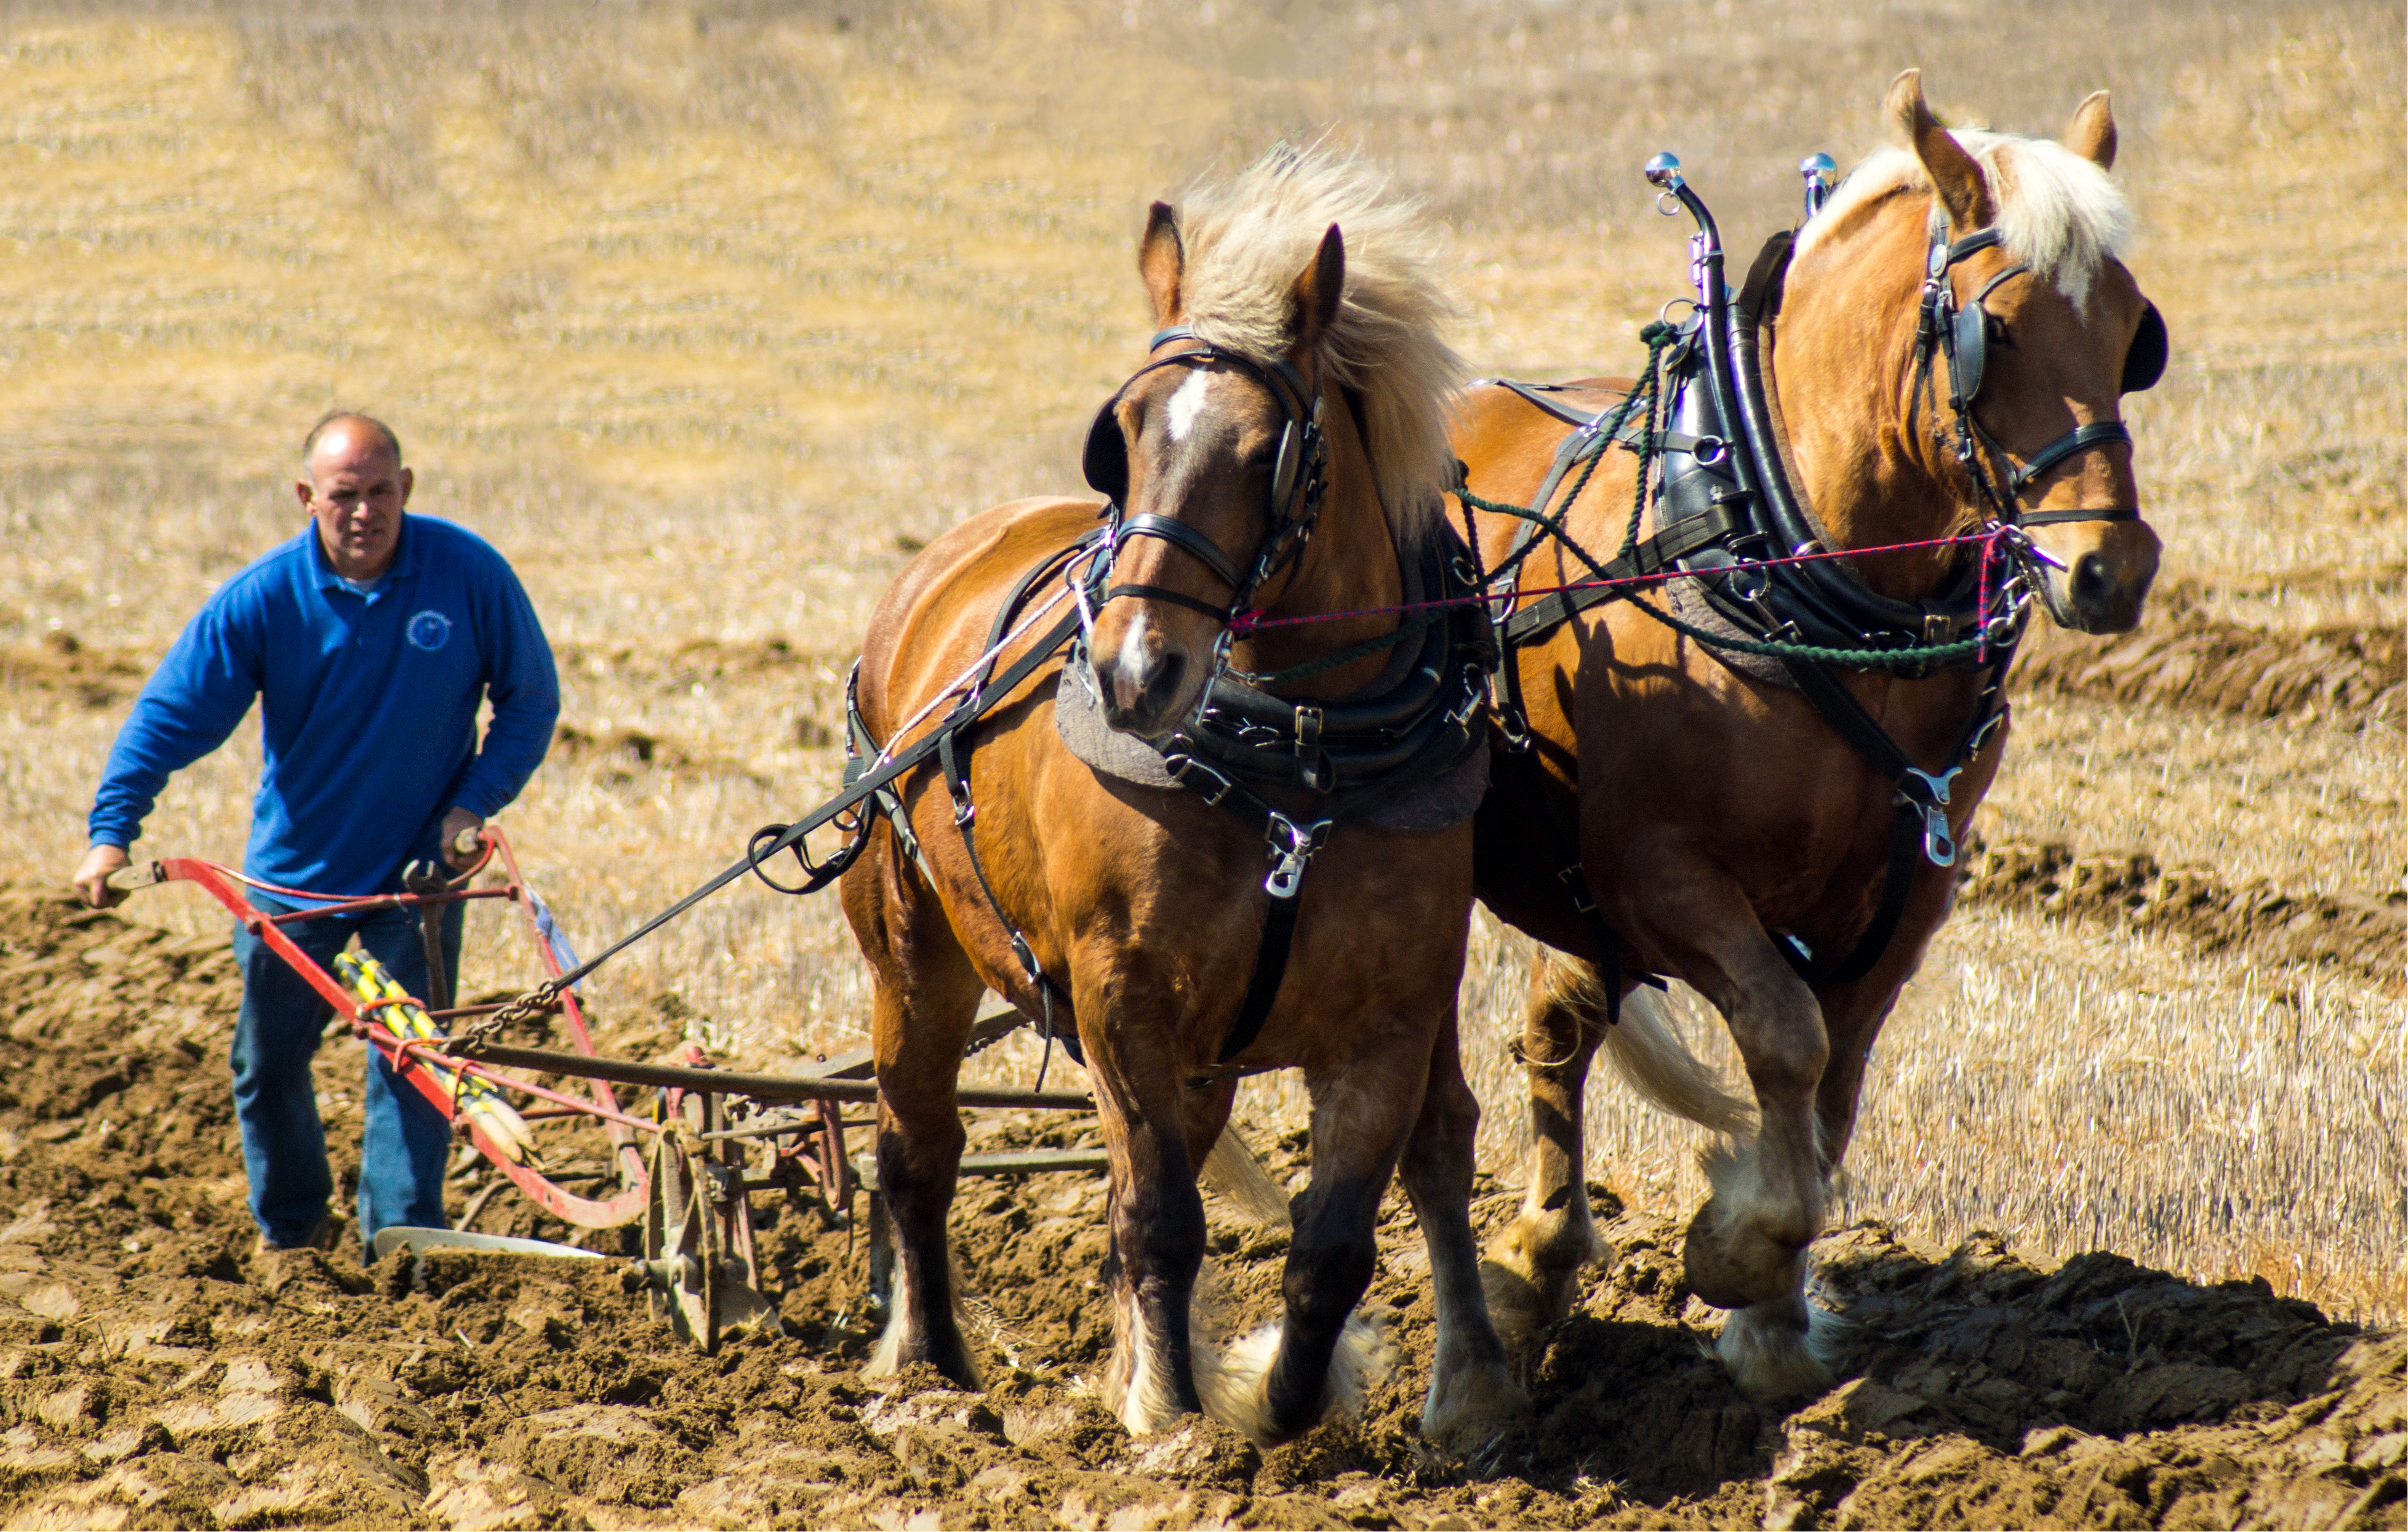 ploughing horses copy